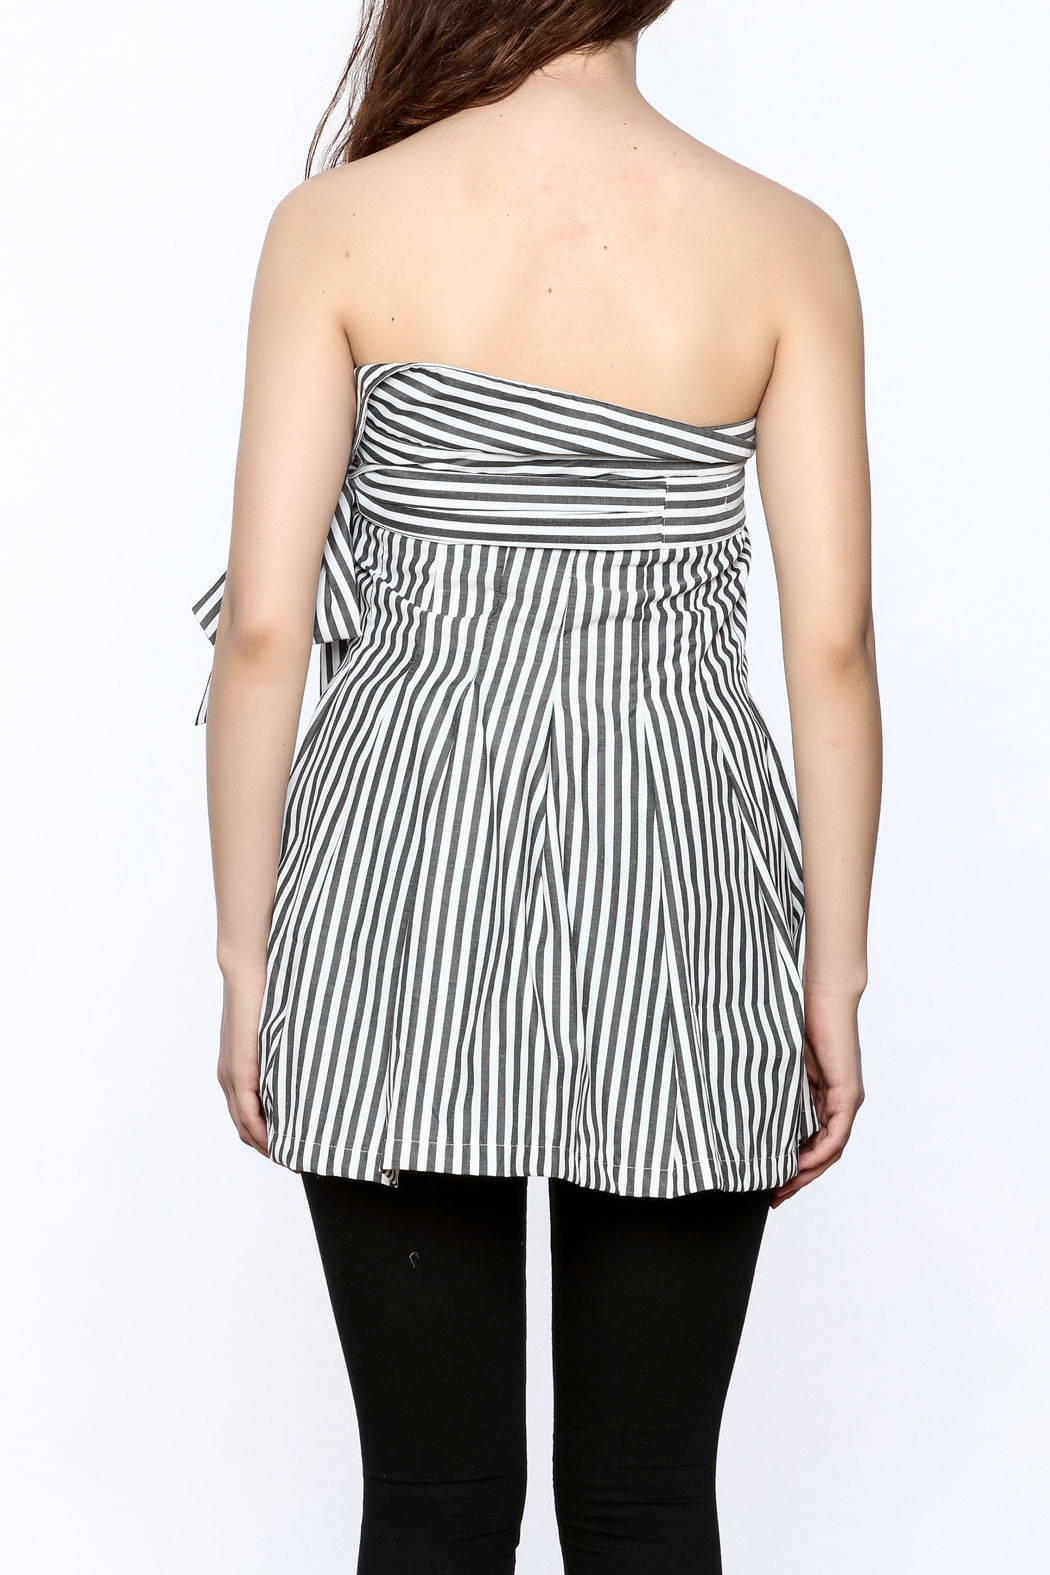 essue Stripe Strapless Top - Back Cropped Image